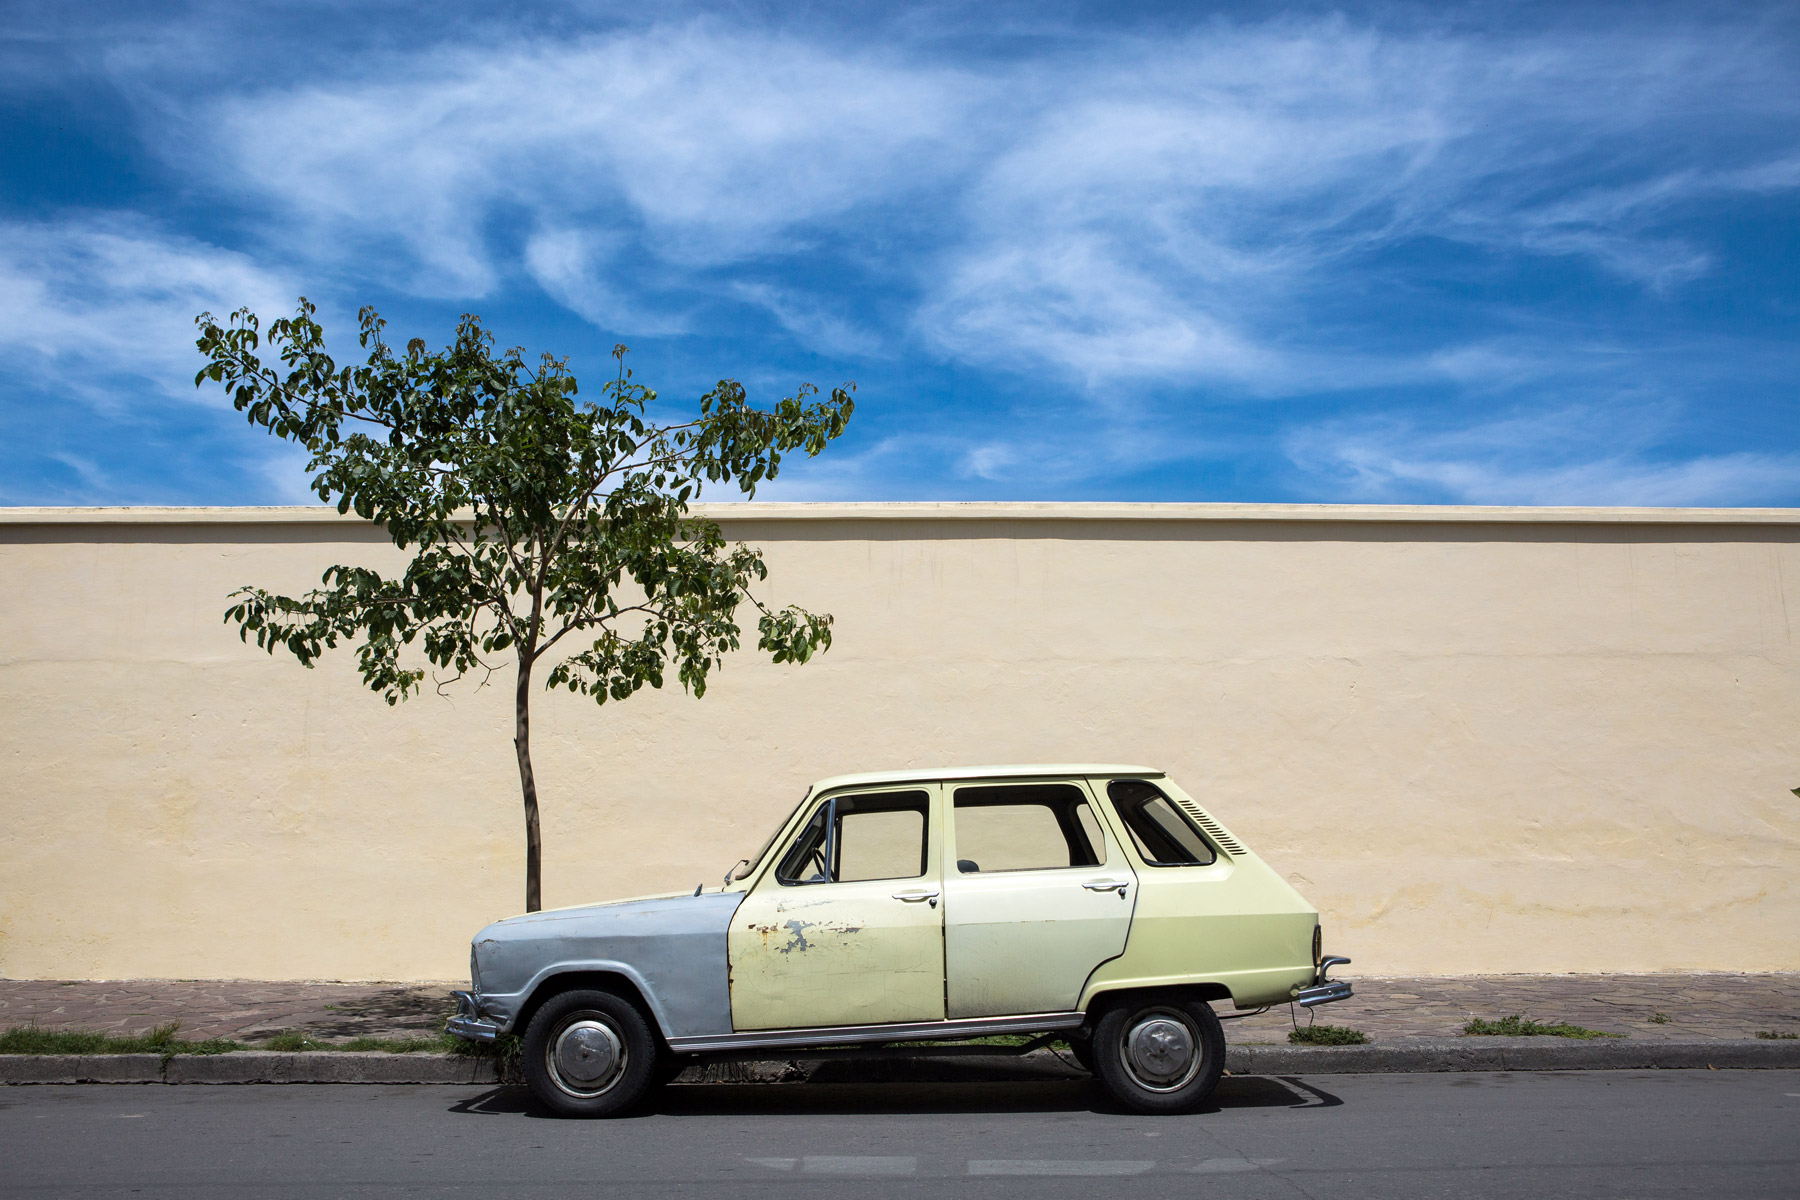 A yellow car in front of a yellow wall in Salta, Argentina